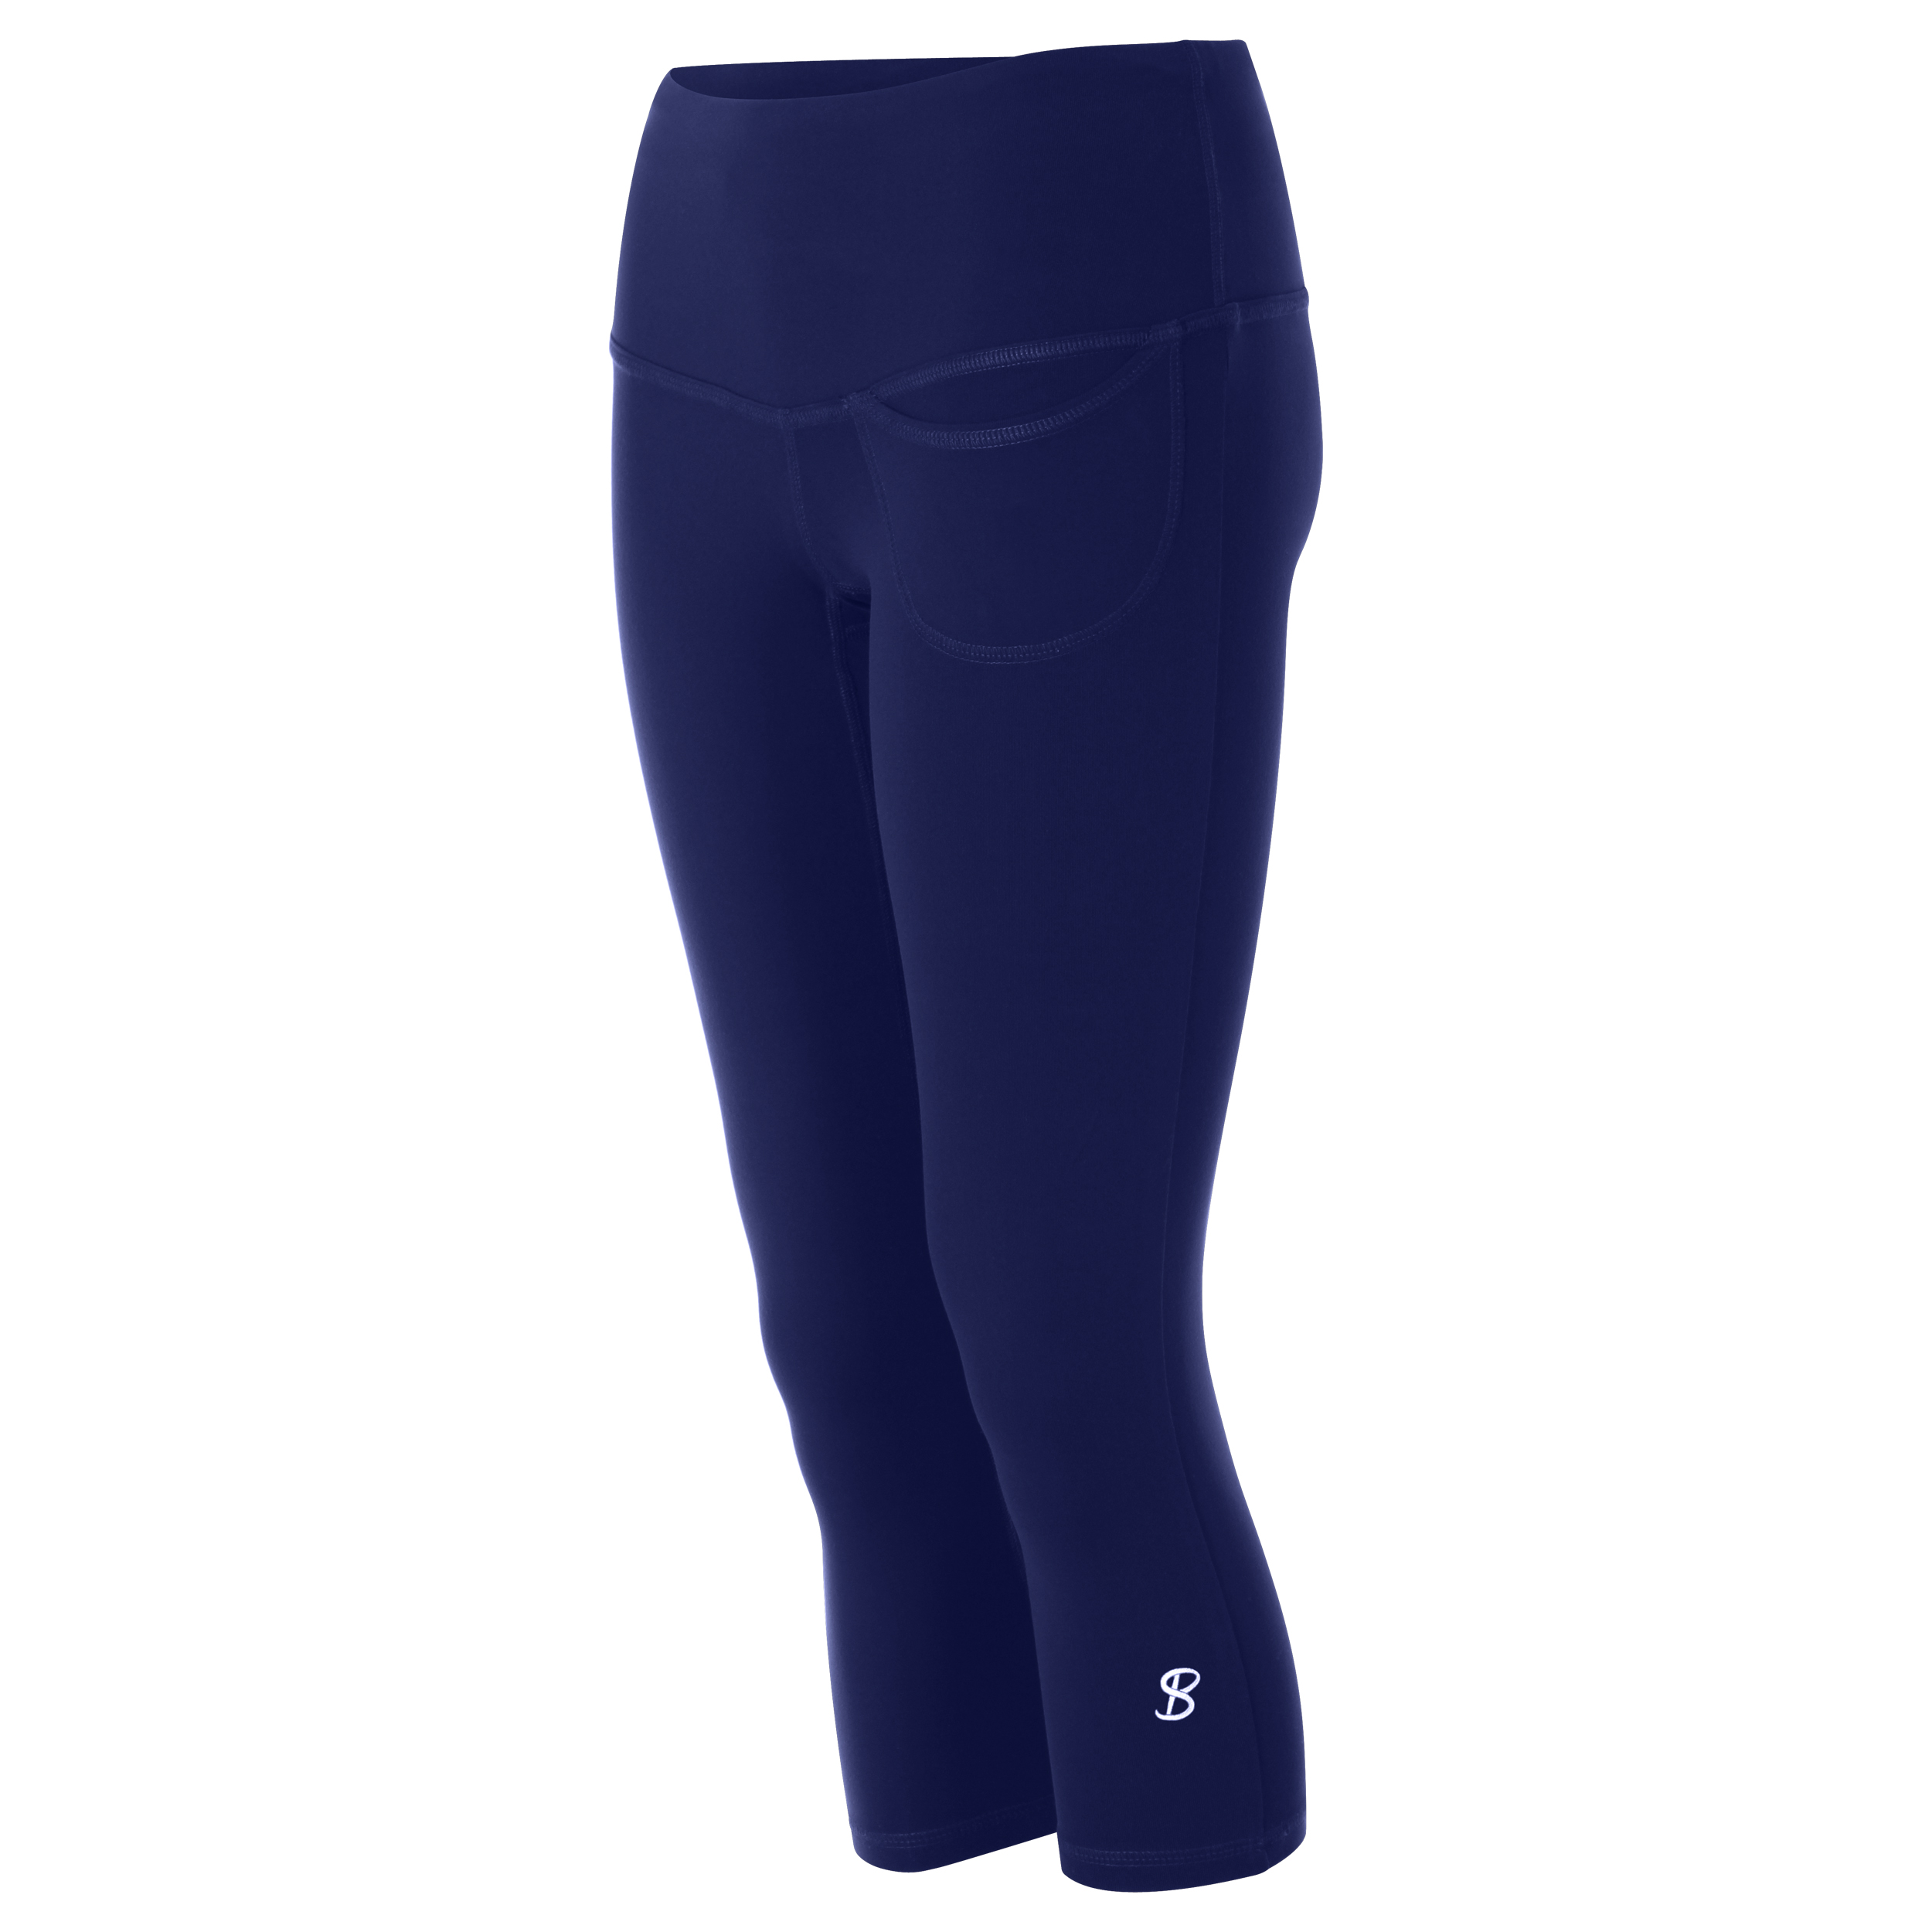 5e824e68f6b40 Sofibella Women's Pocket Capri Tennis Leggings (Navy) - Do It Tennis